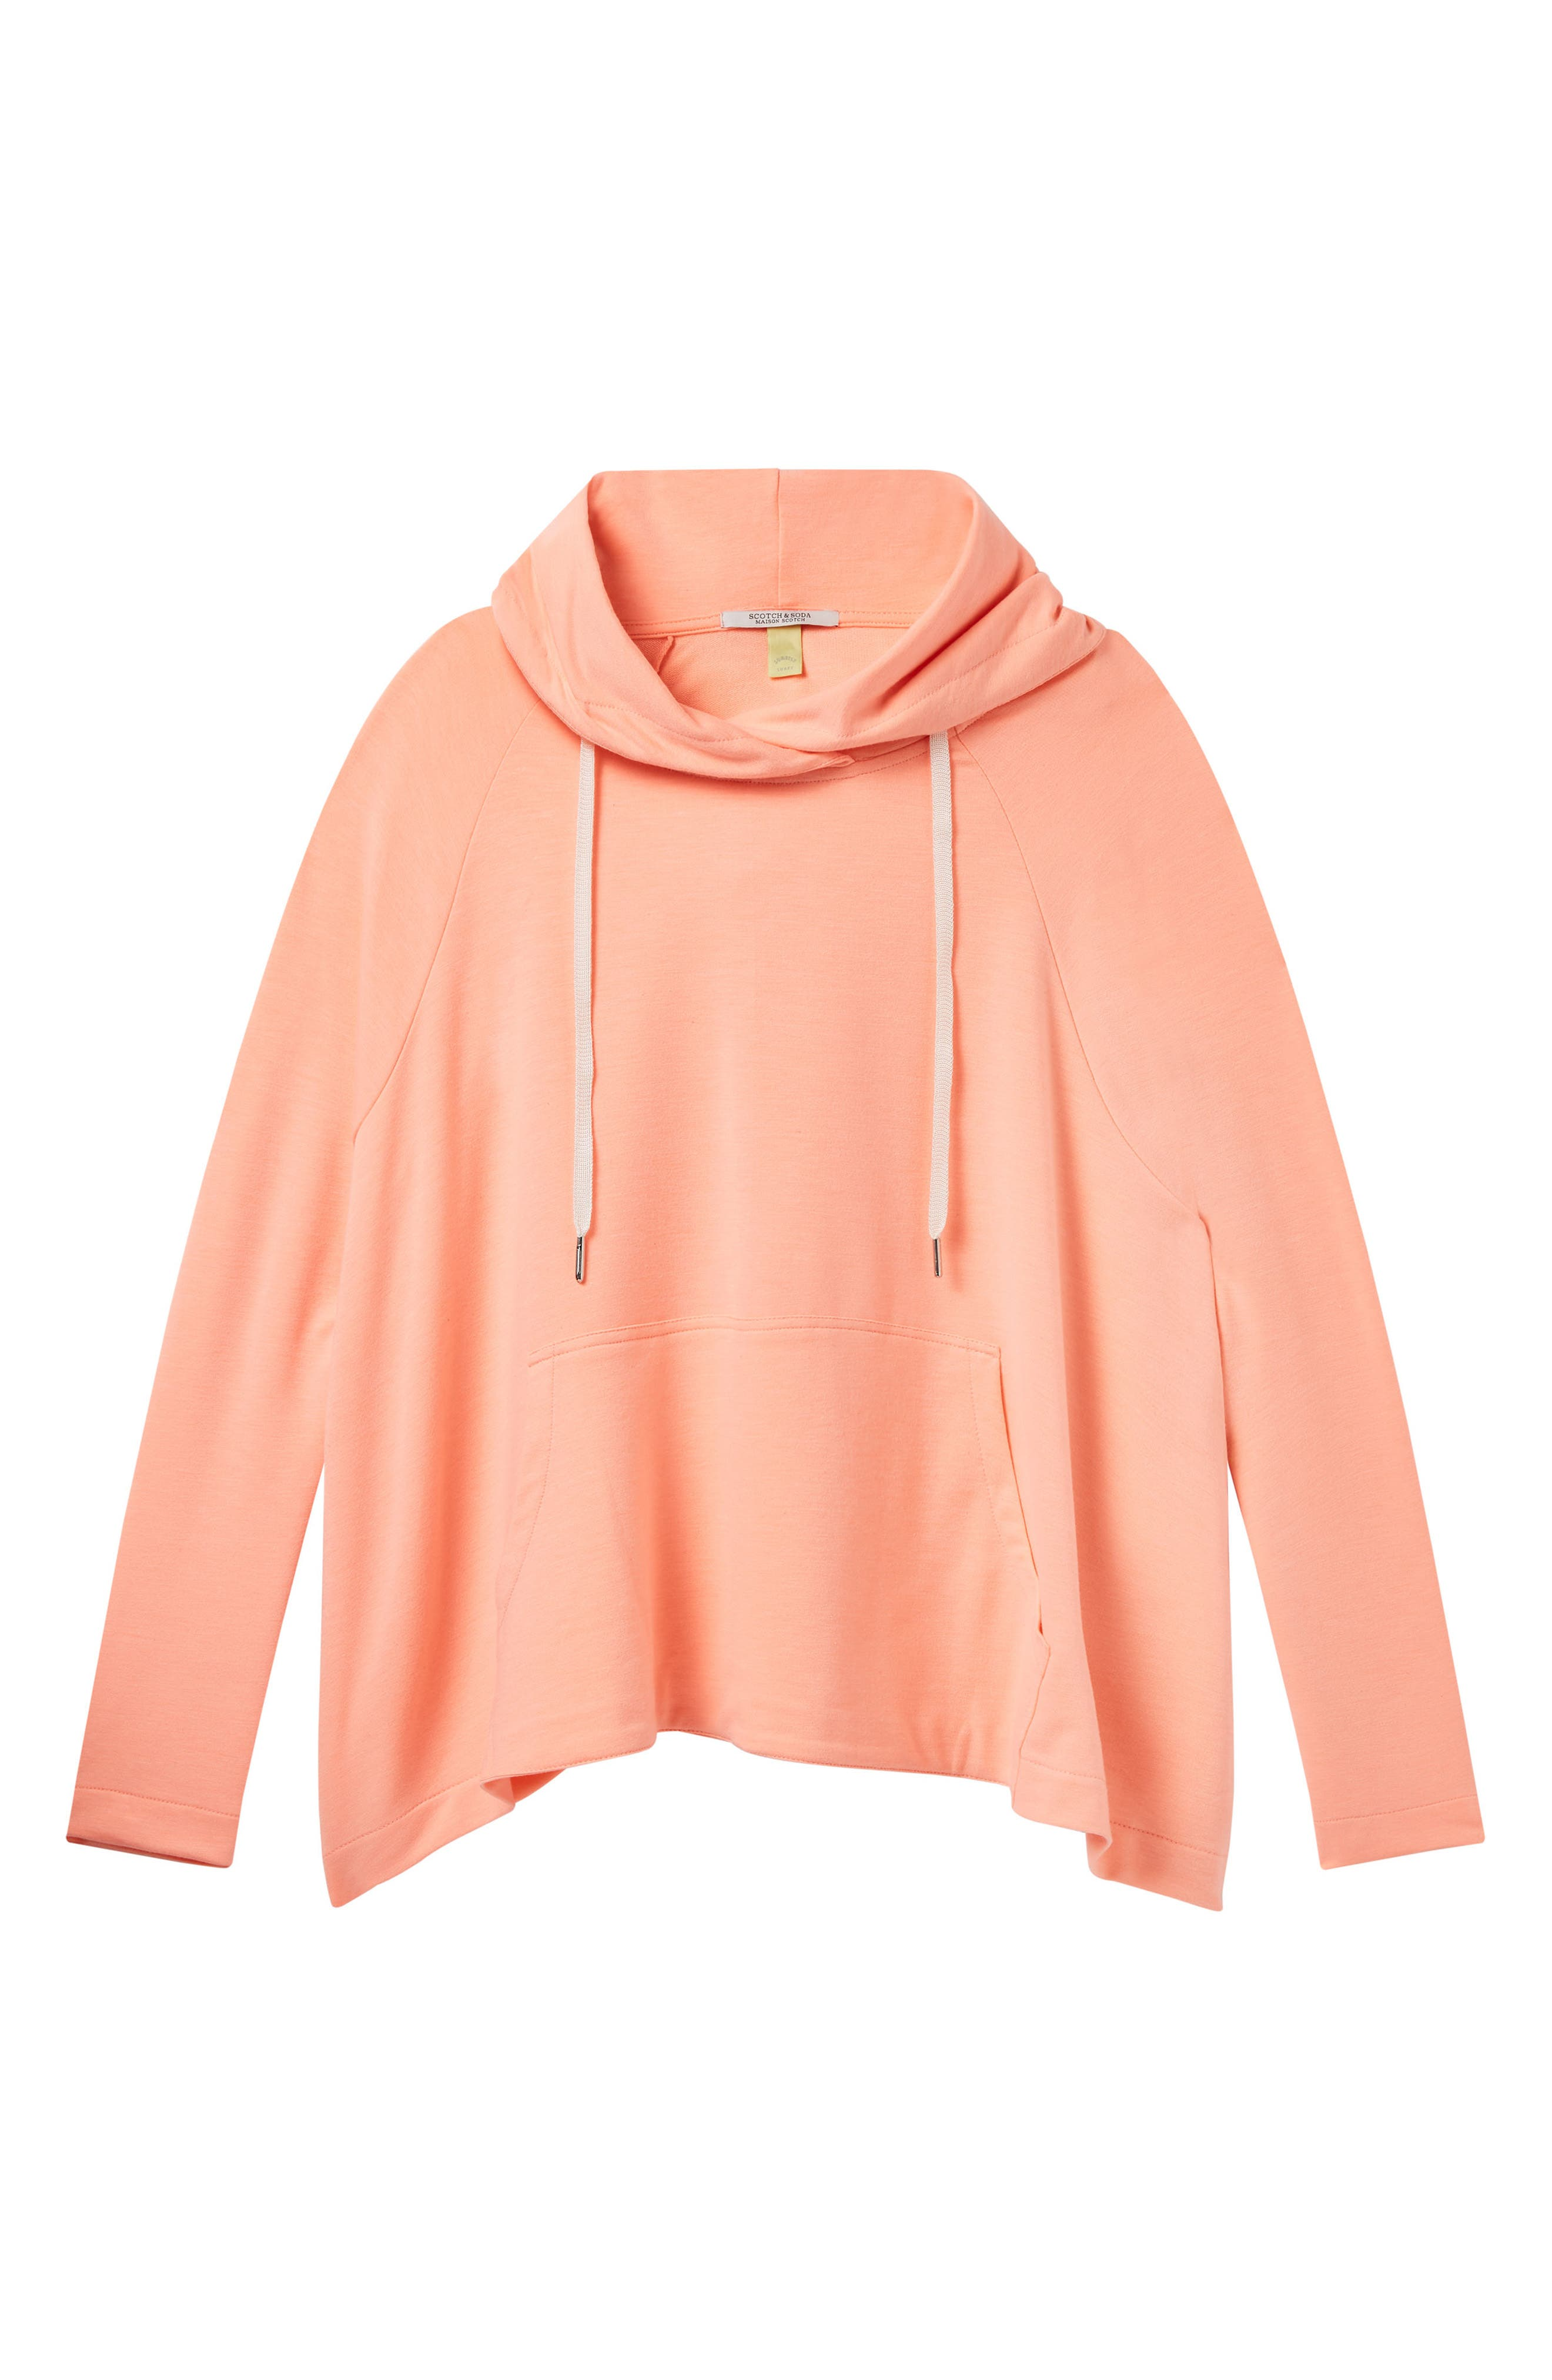 Boxy Fit Hoodie,                             Alternate thumbnail 5, color,                             950